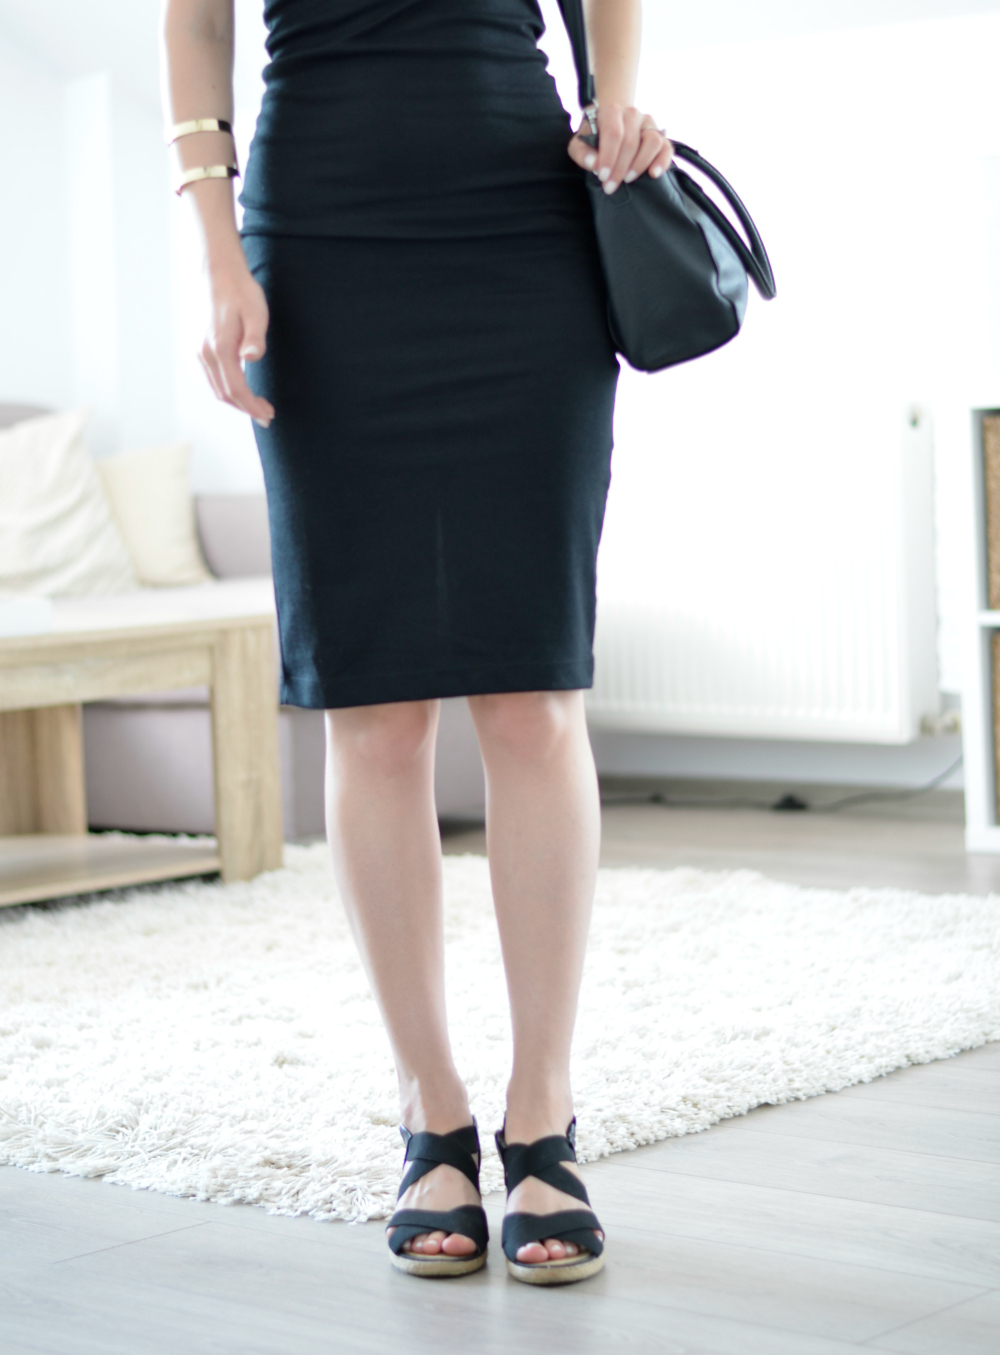 black dress and black sandals for summer outfit